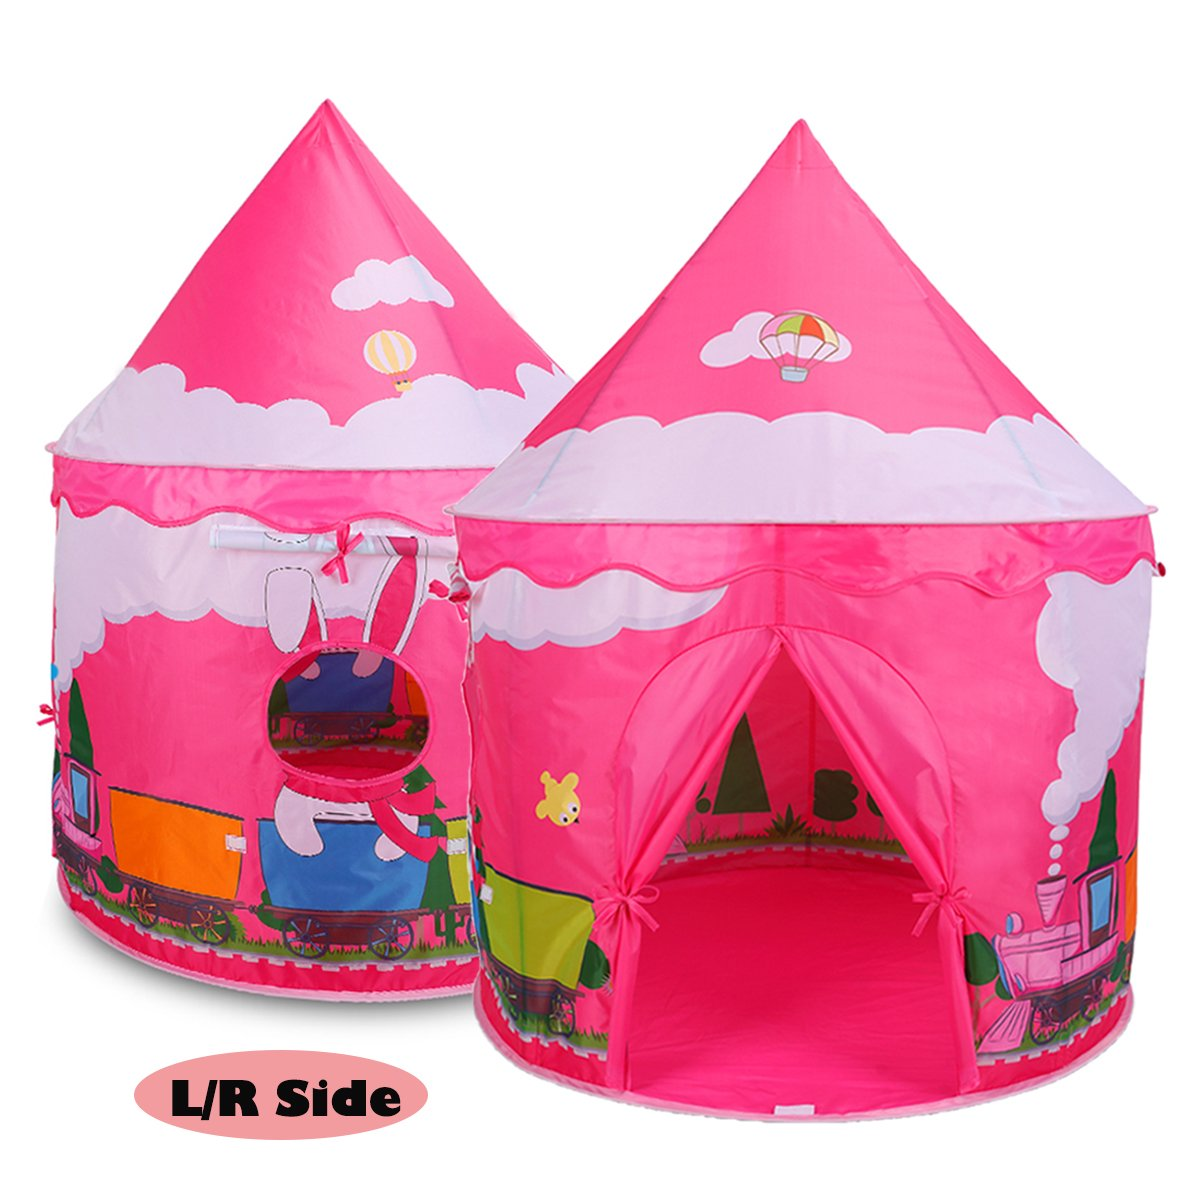 Eggsnow Girls Tent Princess Castle Play Tent Kids Play Tents for Girls Indoor and Outdoor Fun Play-Pink